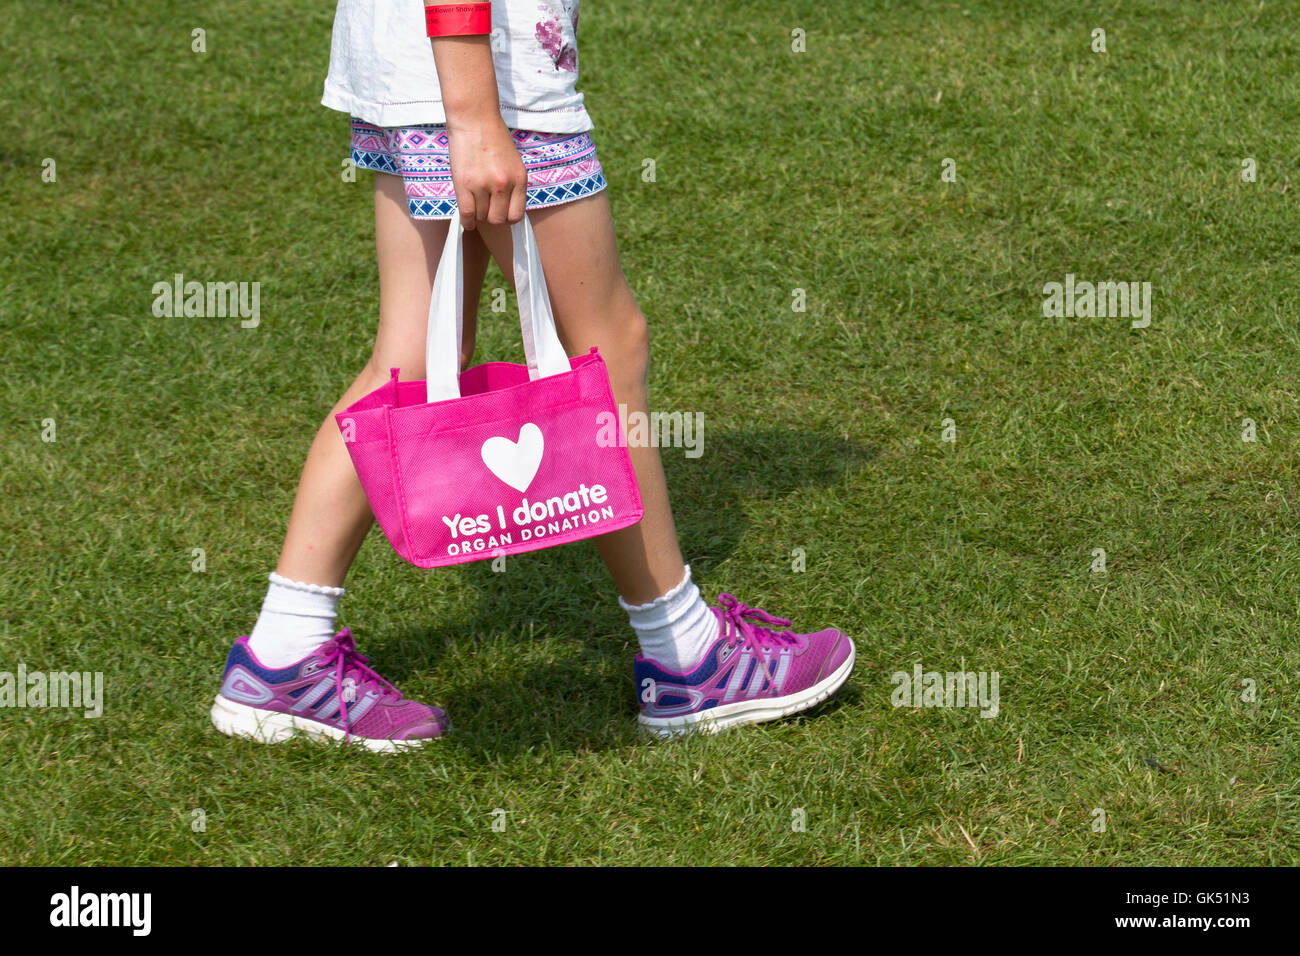 Yes I Donate. Young Evie Pownall, (MR) girl 6 years old carrying 'Yes I donate'  pink bag recommending registering - Stock Image